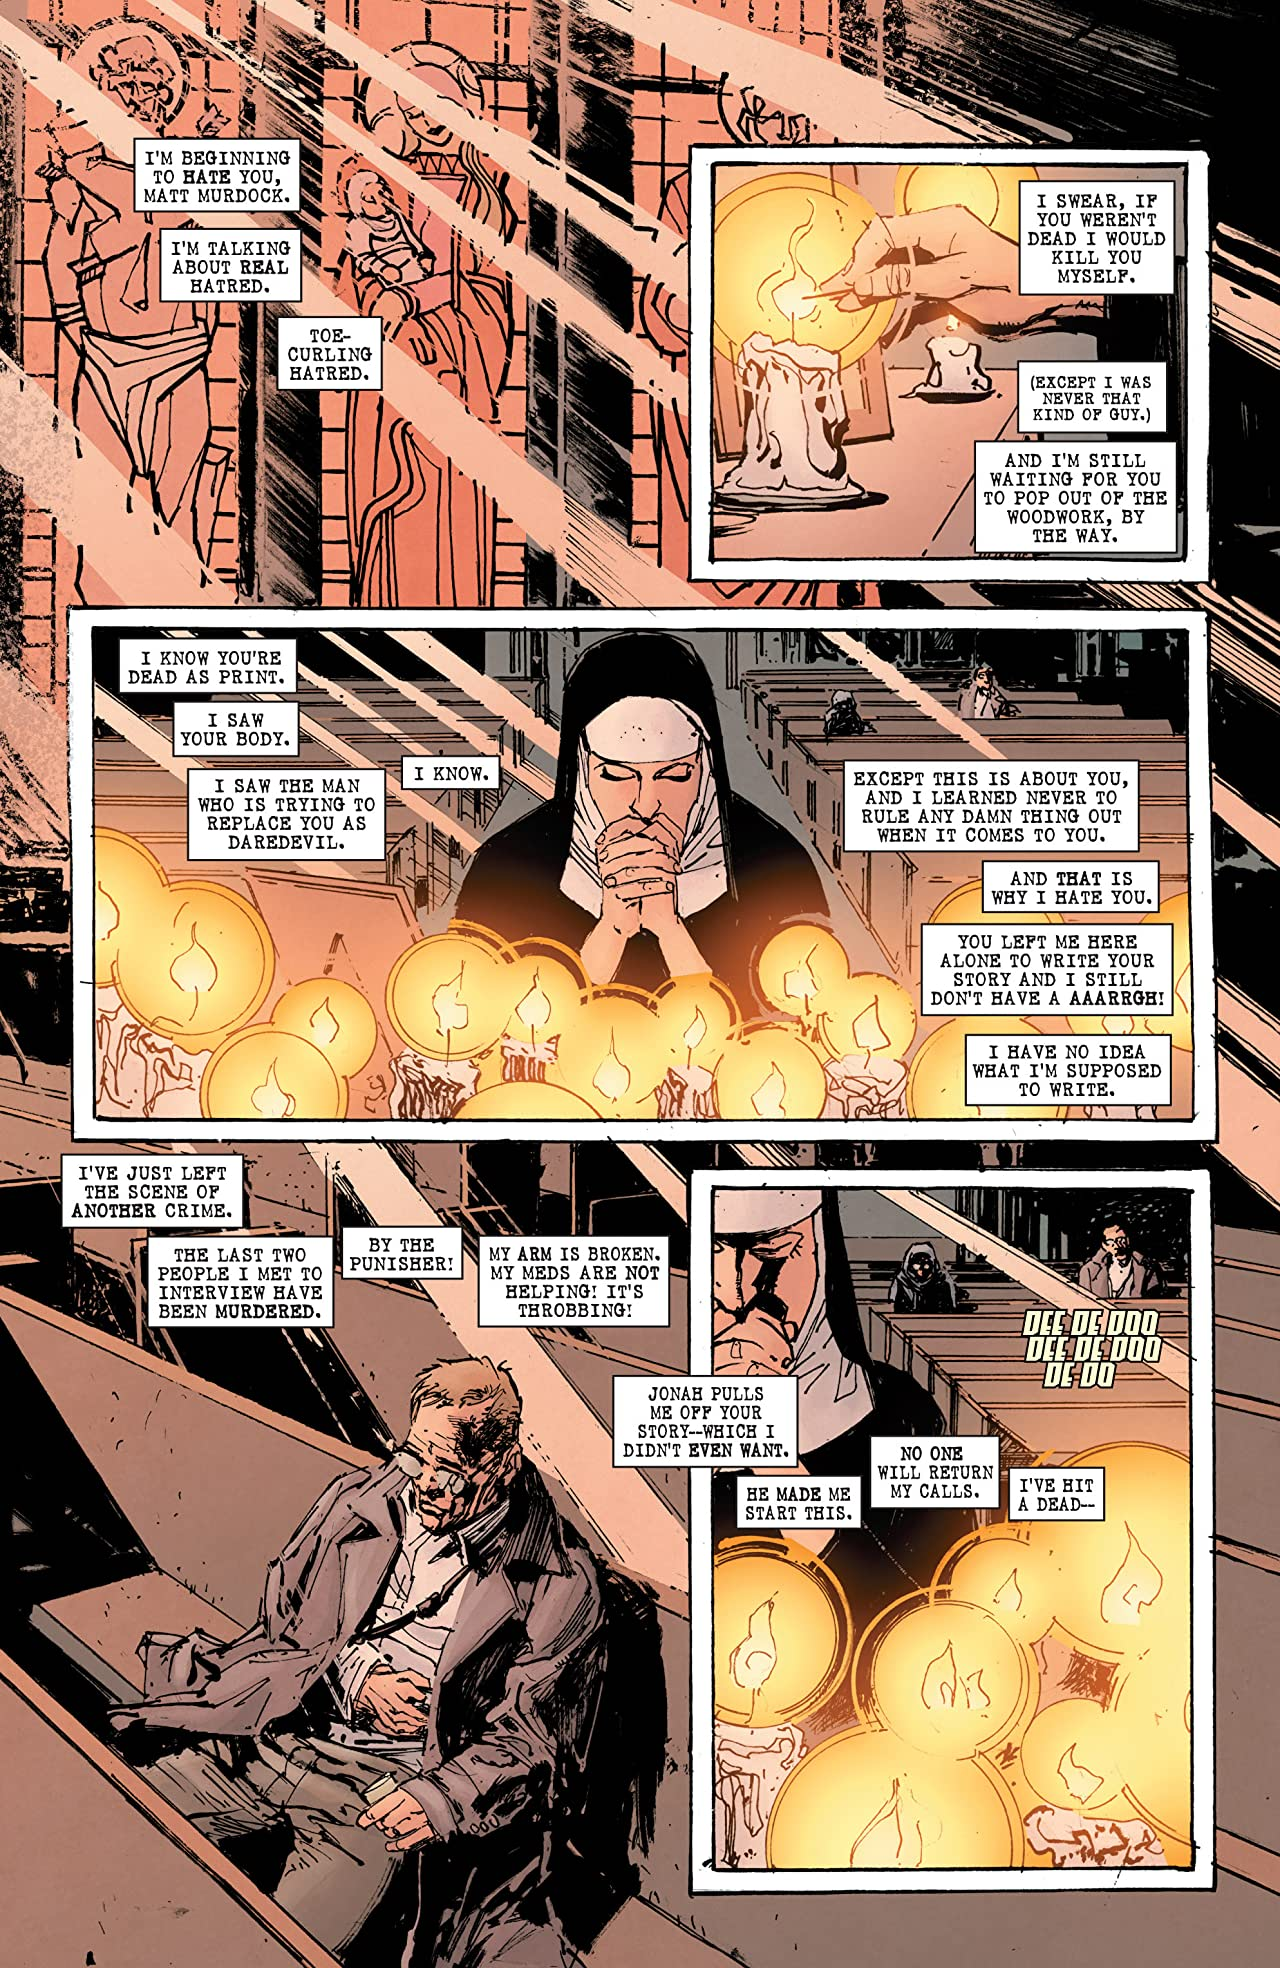 Daredevil: End of Days #7 (of 8)